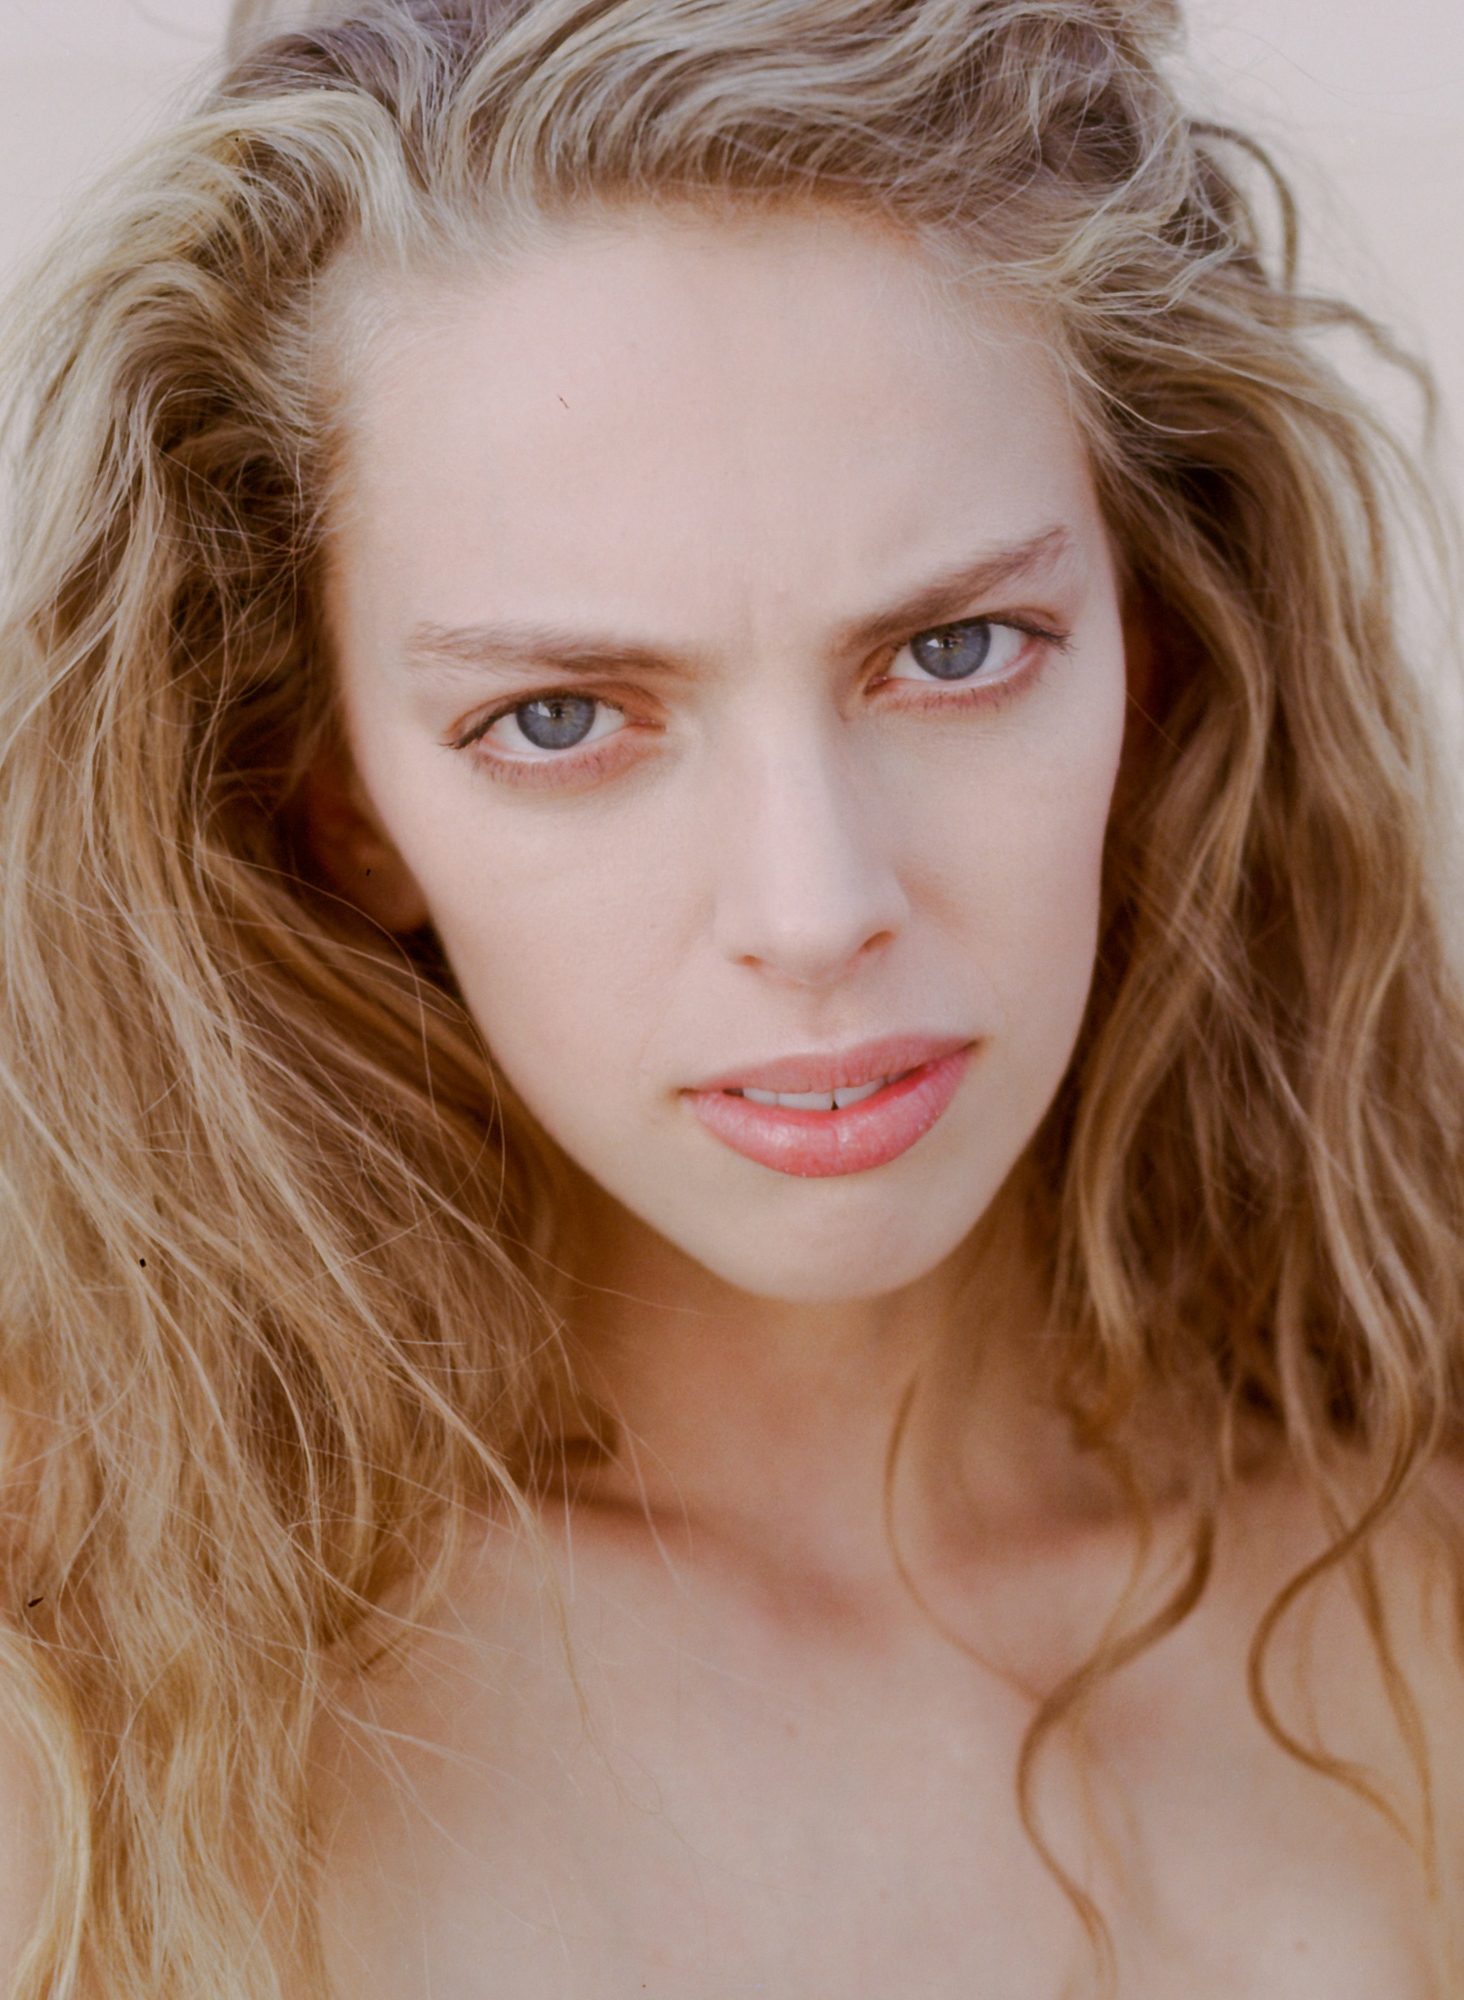 Go-see with Dutch model Jitte Oerlemans Chic Management